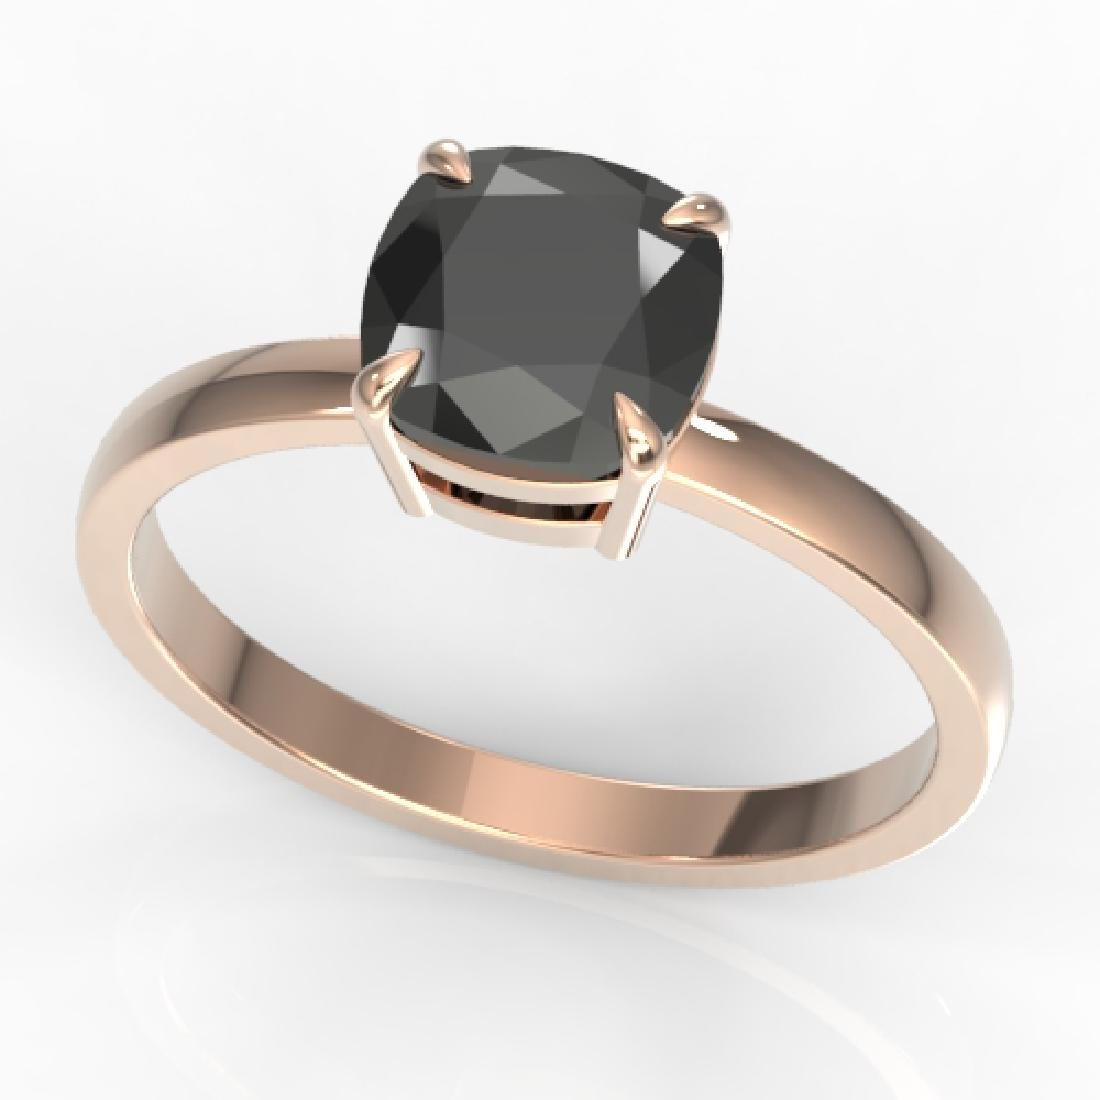 3 CTW Cushion Cut Black VS/SI Diamond Solitaire - 2